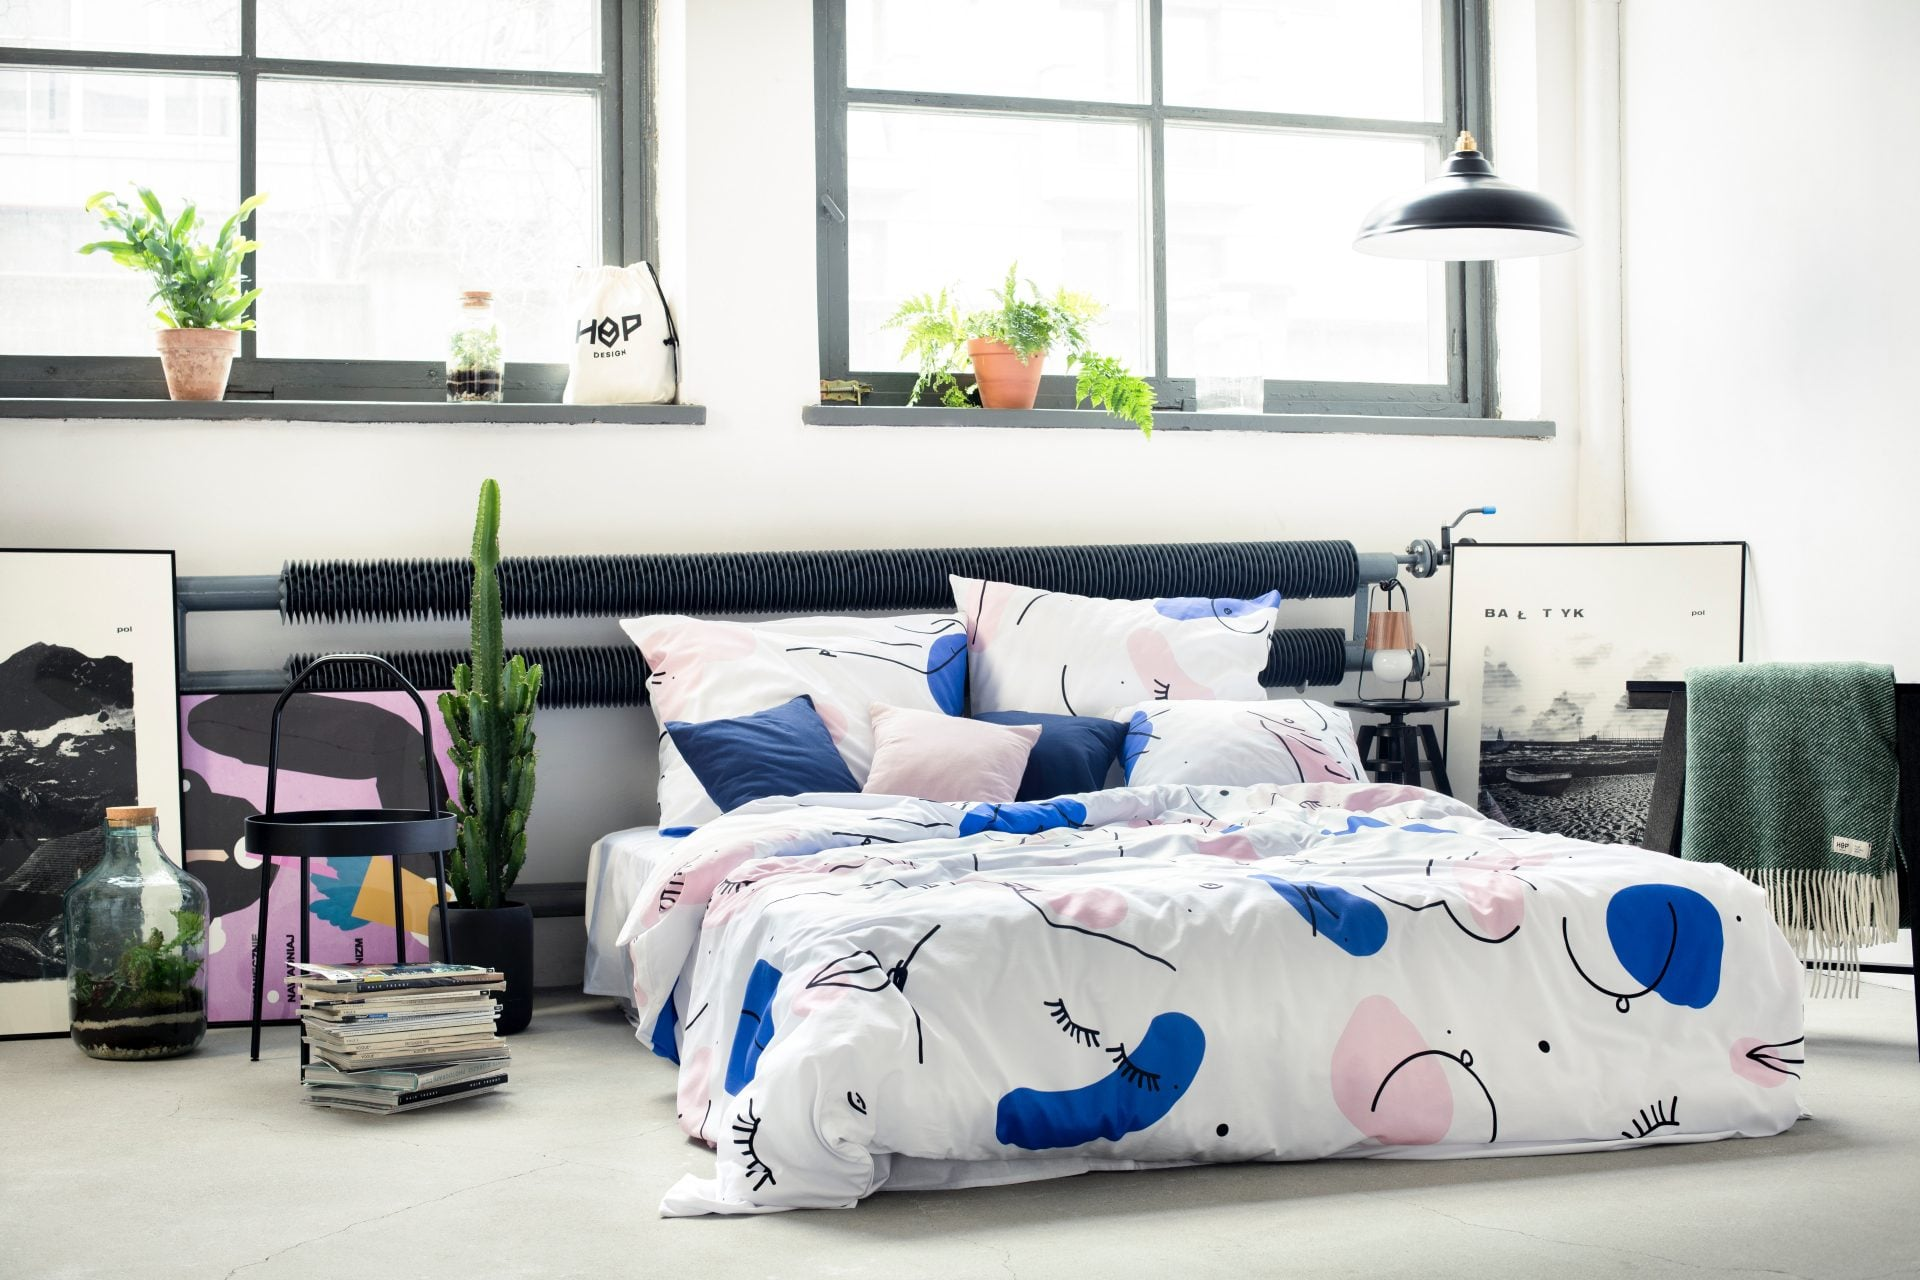 hop design 6AiDJbdTeHw unsplash 1920x1280 - Types of Mattresses and What is Best for You